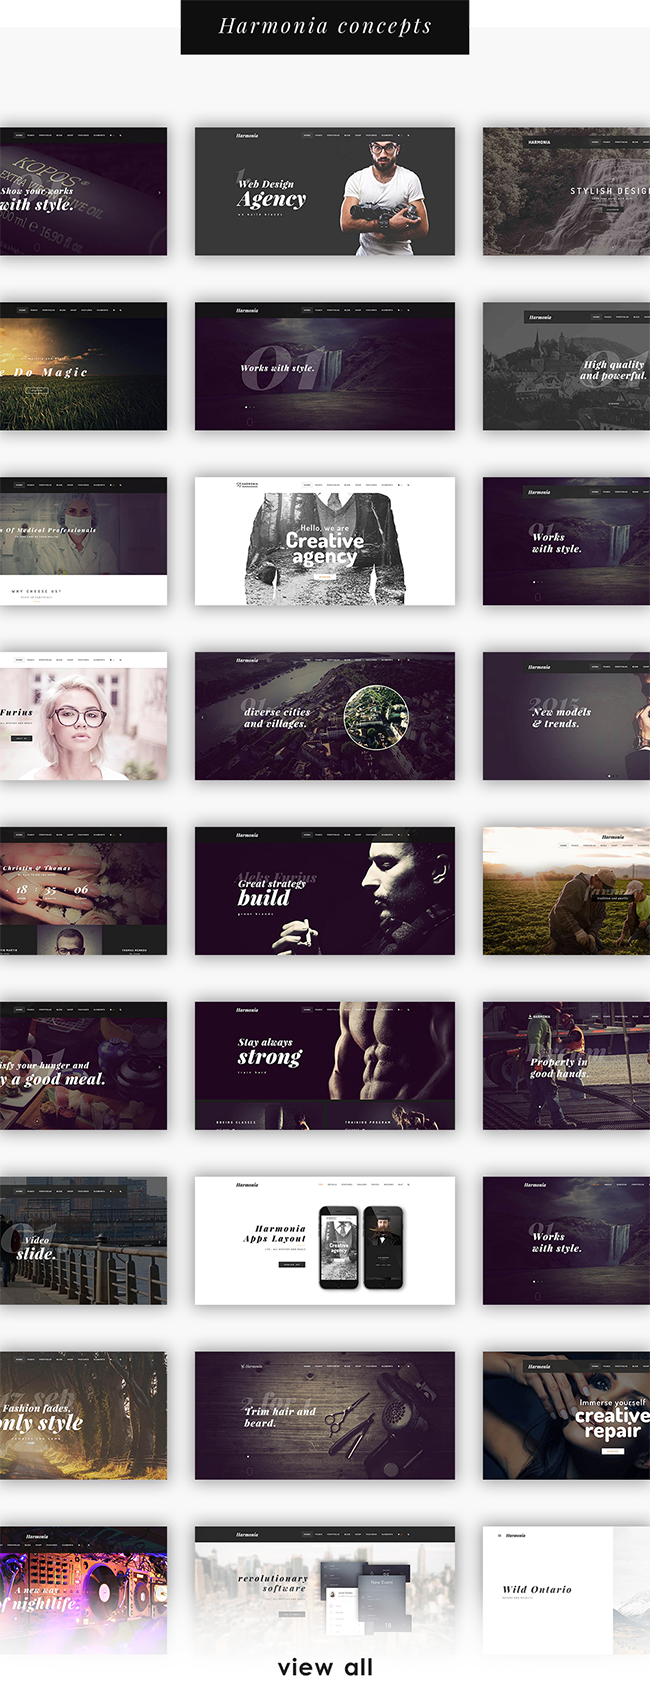 Harmonia - Kreatives Mehrzweck-WordPress-Template